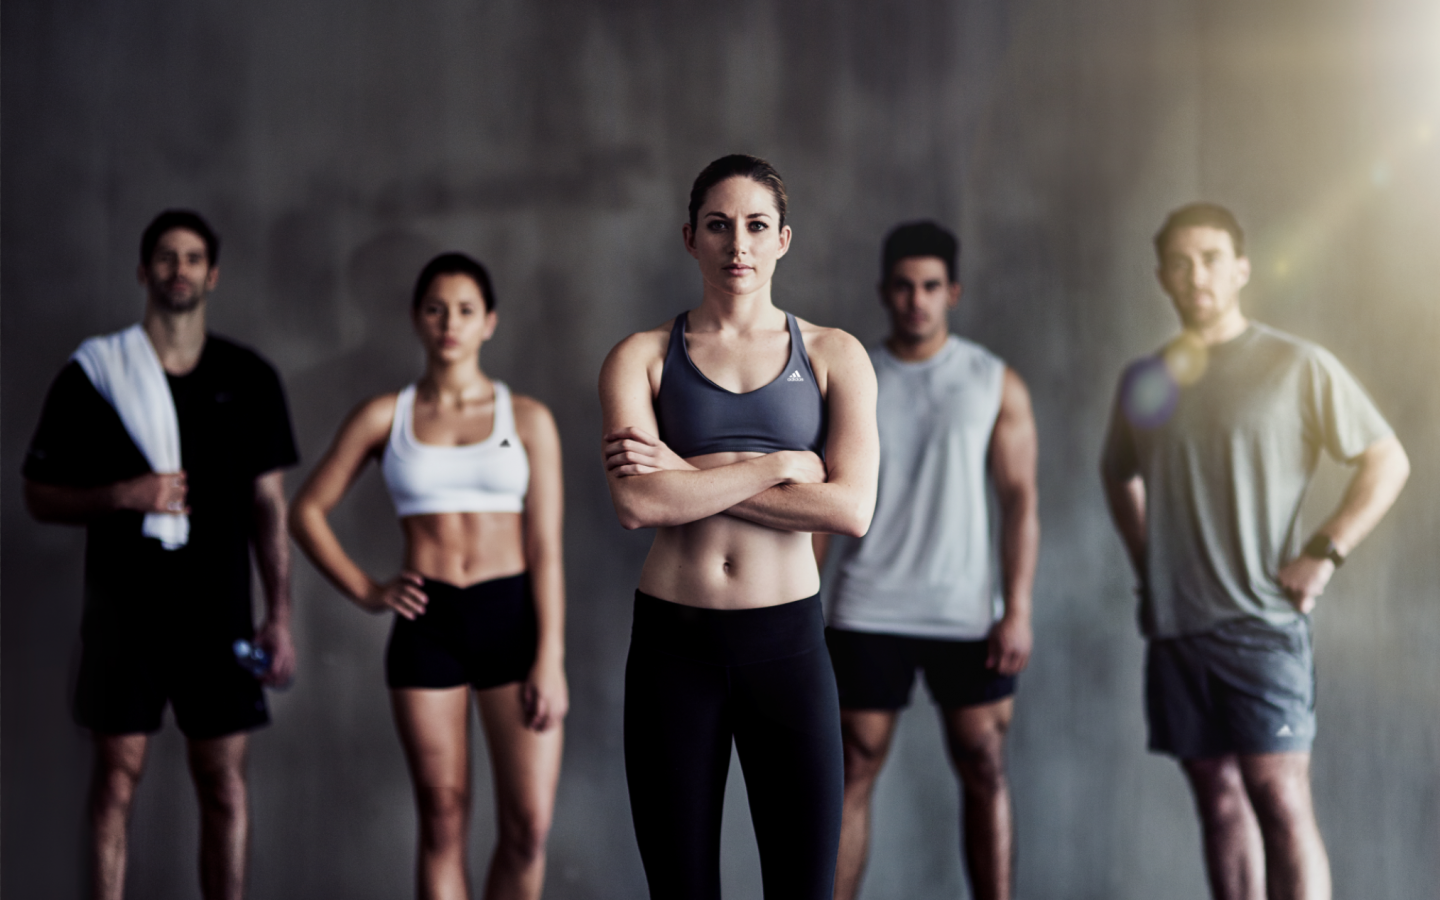 Athletes ready for workout staring into the camera bursting of confidence, confidence, trust, athletes, workout mode, out of your comfort zone, adidas, GamePlan A, boost confidence